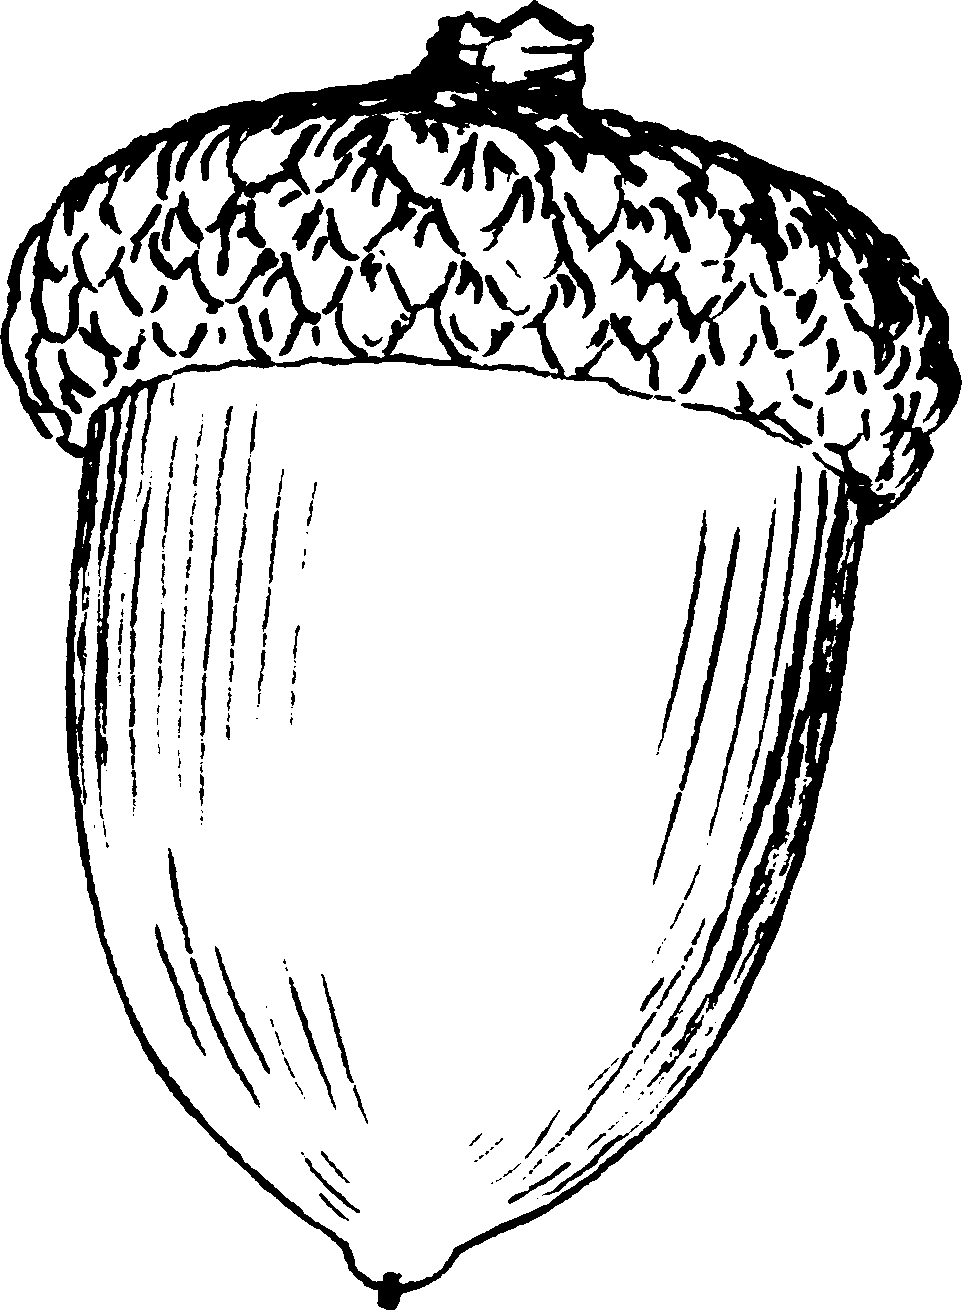 Barnacle drawing easy. Collection of acorn